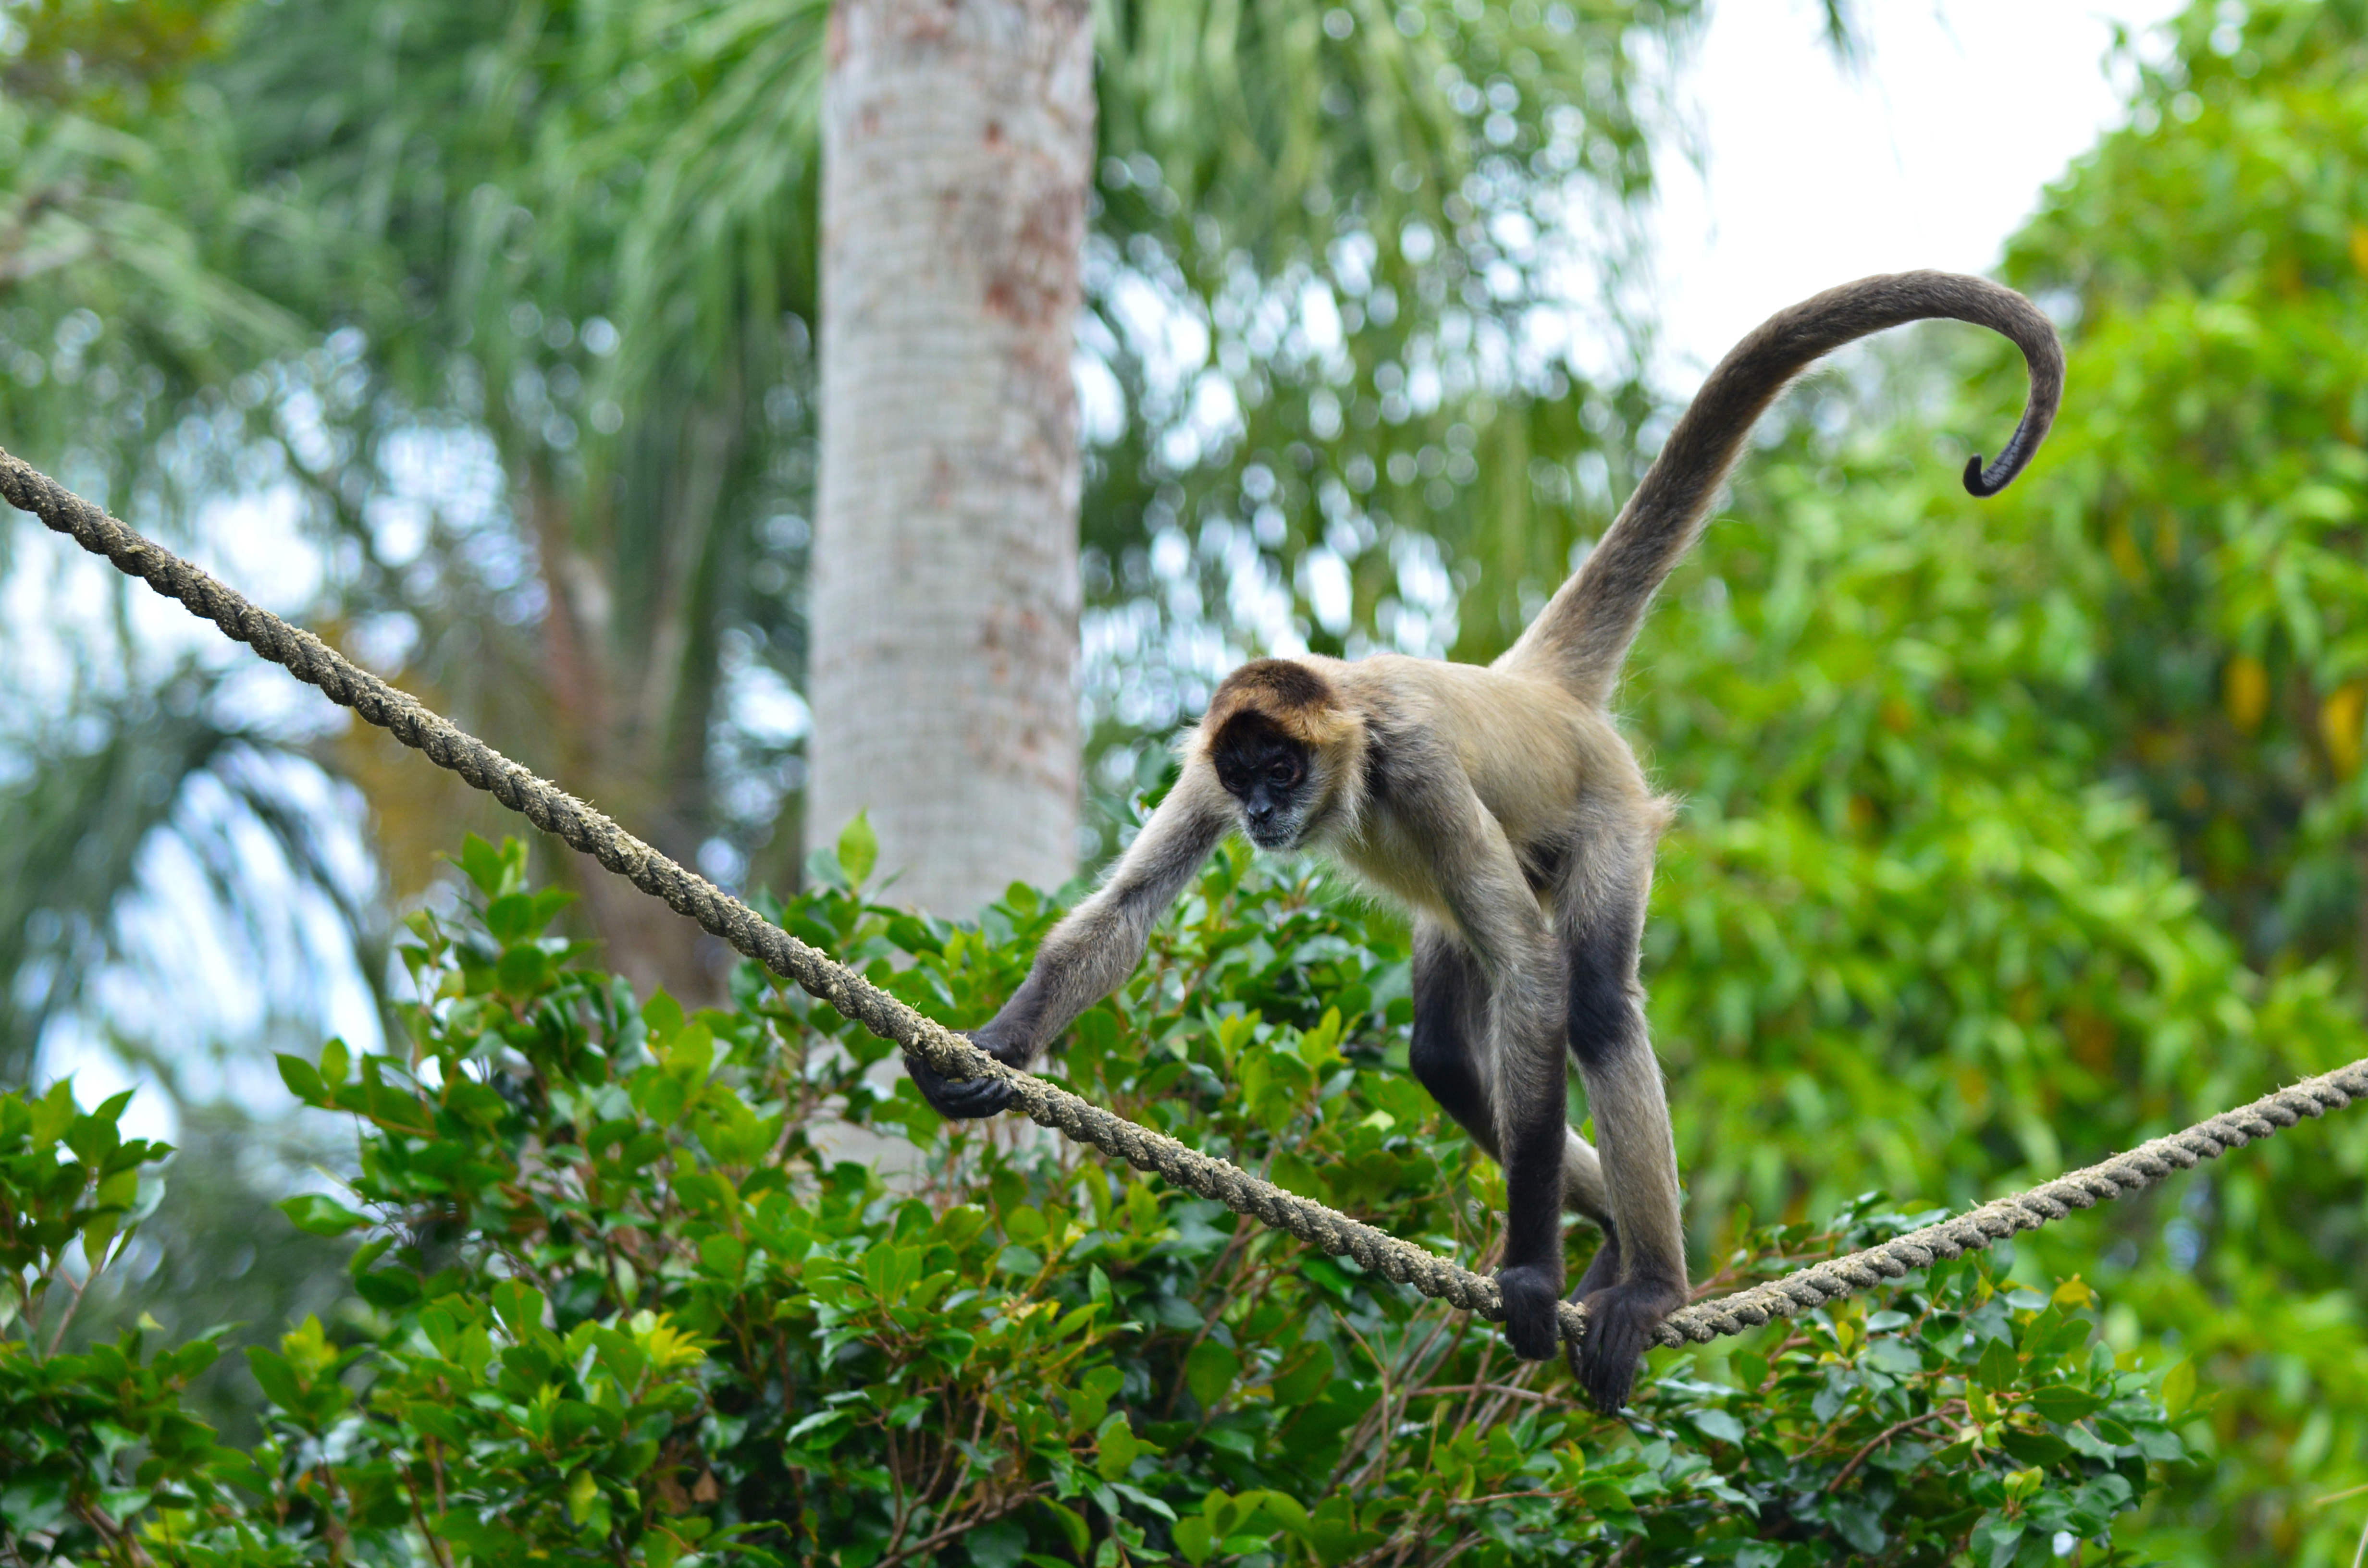 Spider monkey play on a rope in a forest